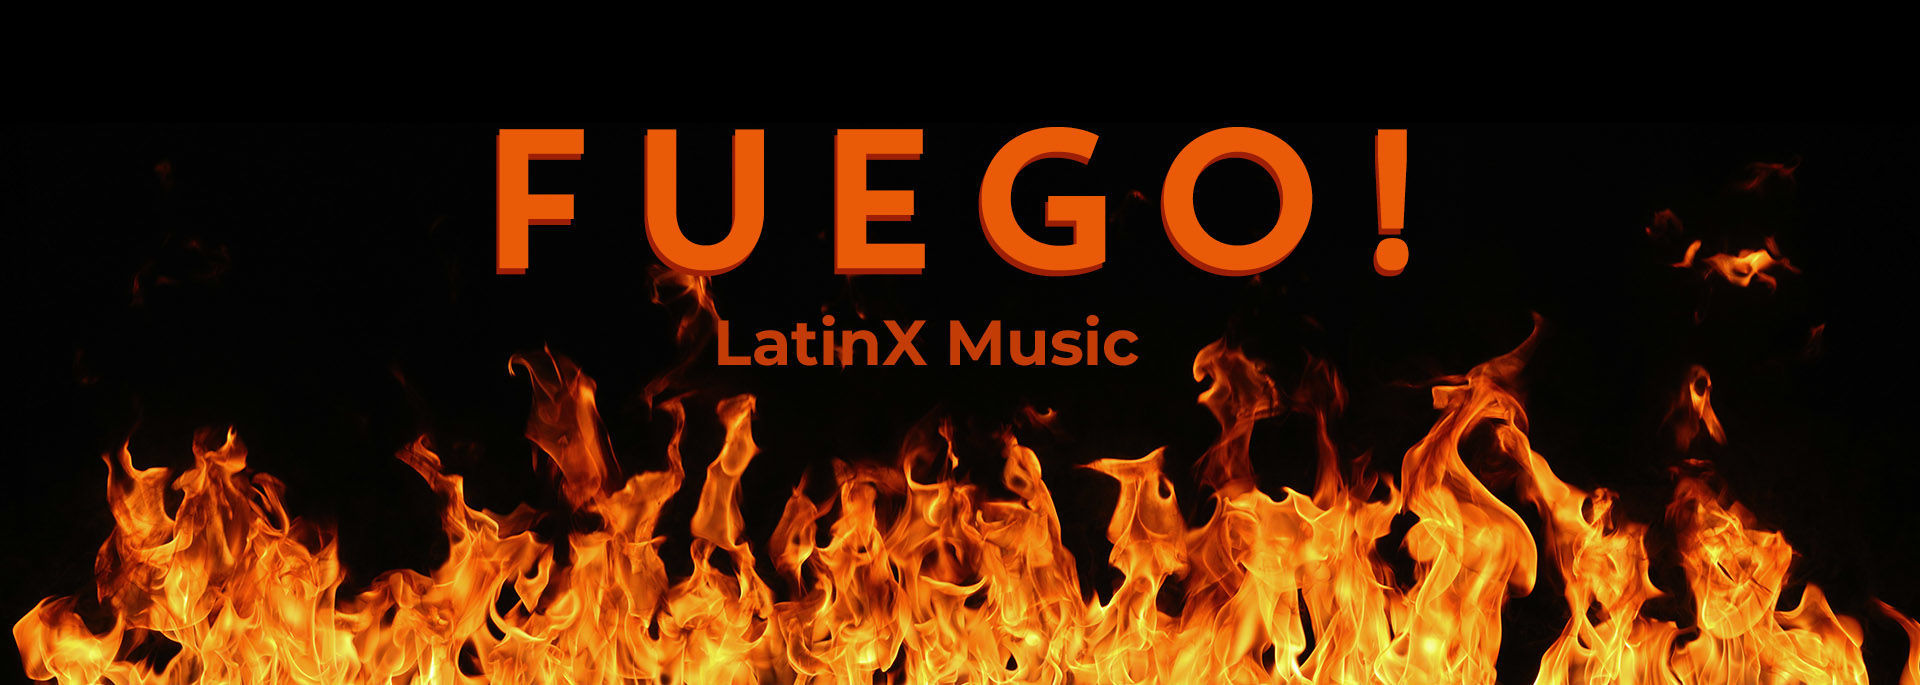 FUEGO! channel